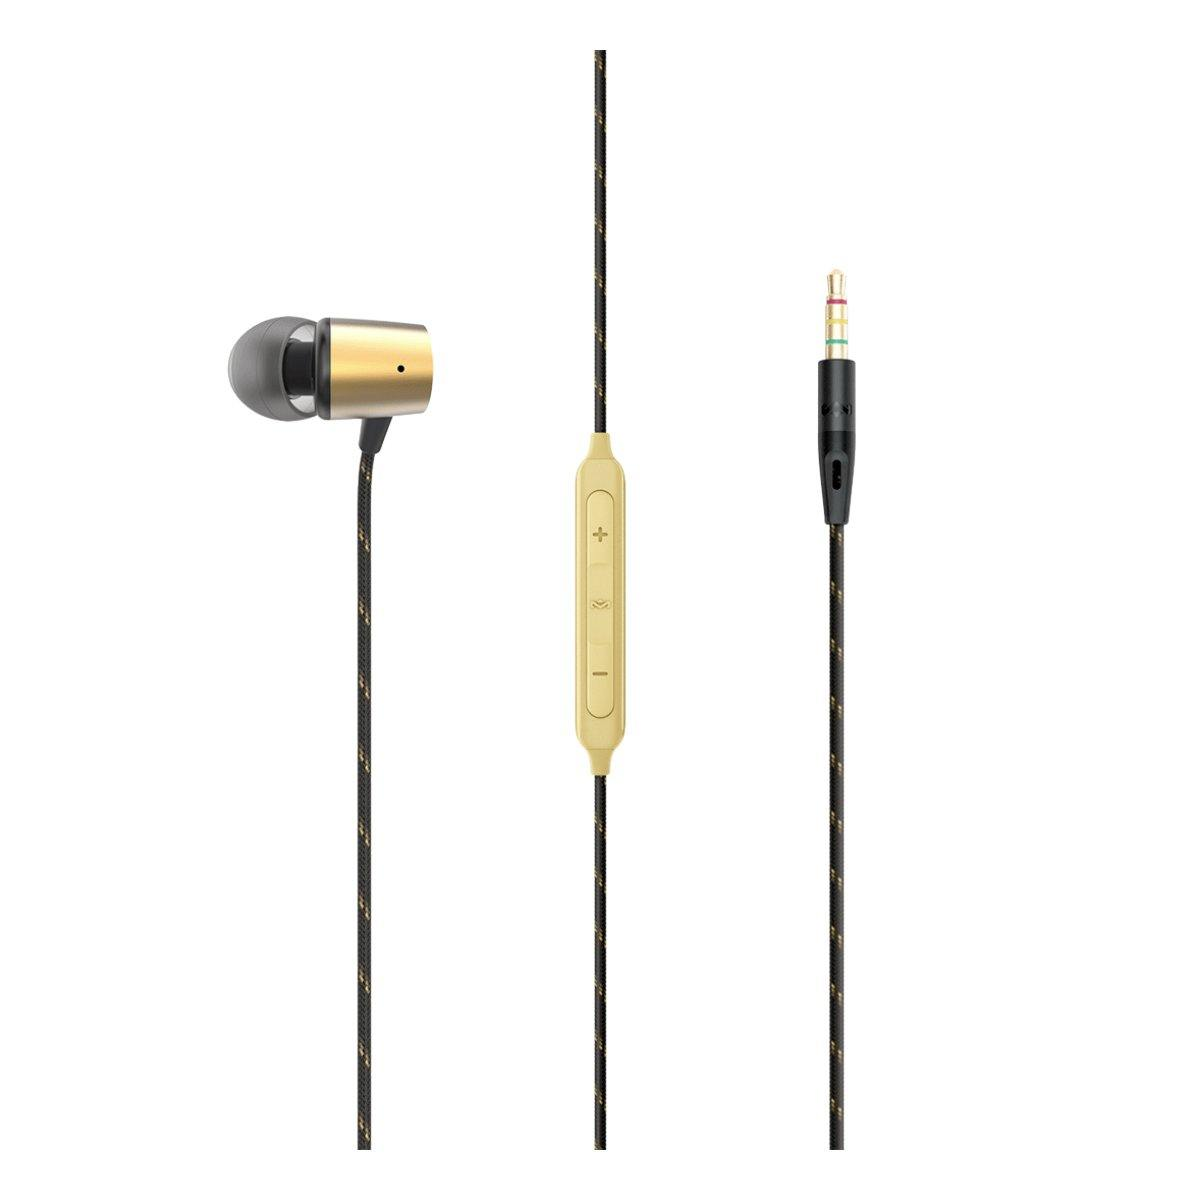 House of Marley Uplift 2 In-Ear Headphones (Brass) *DEMO*